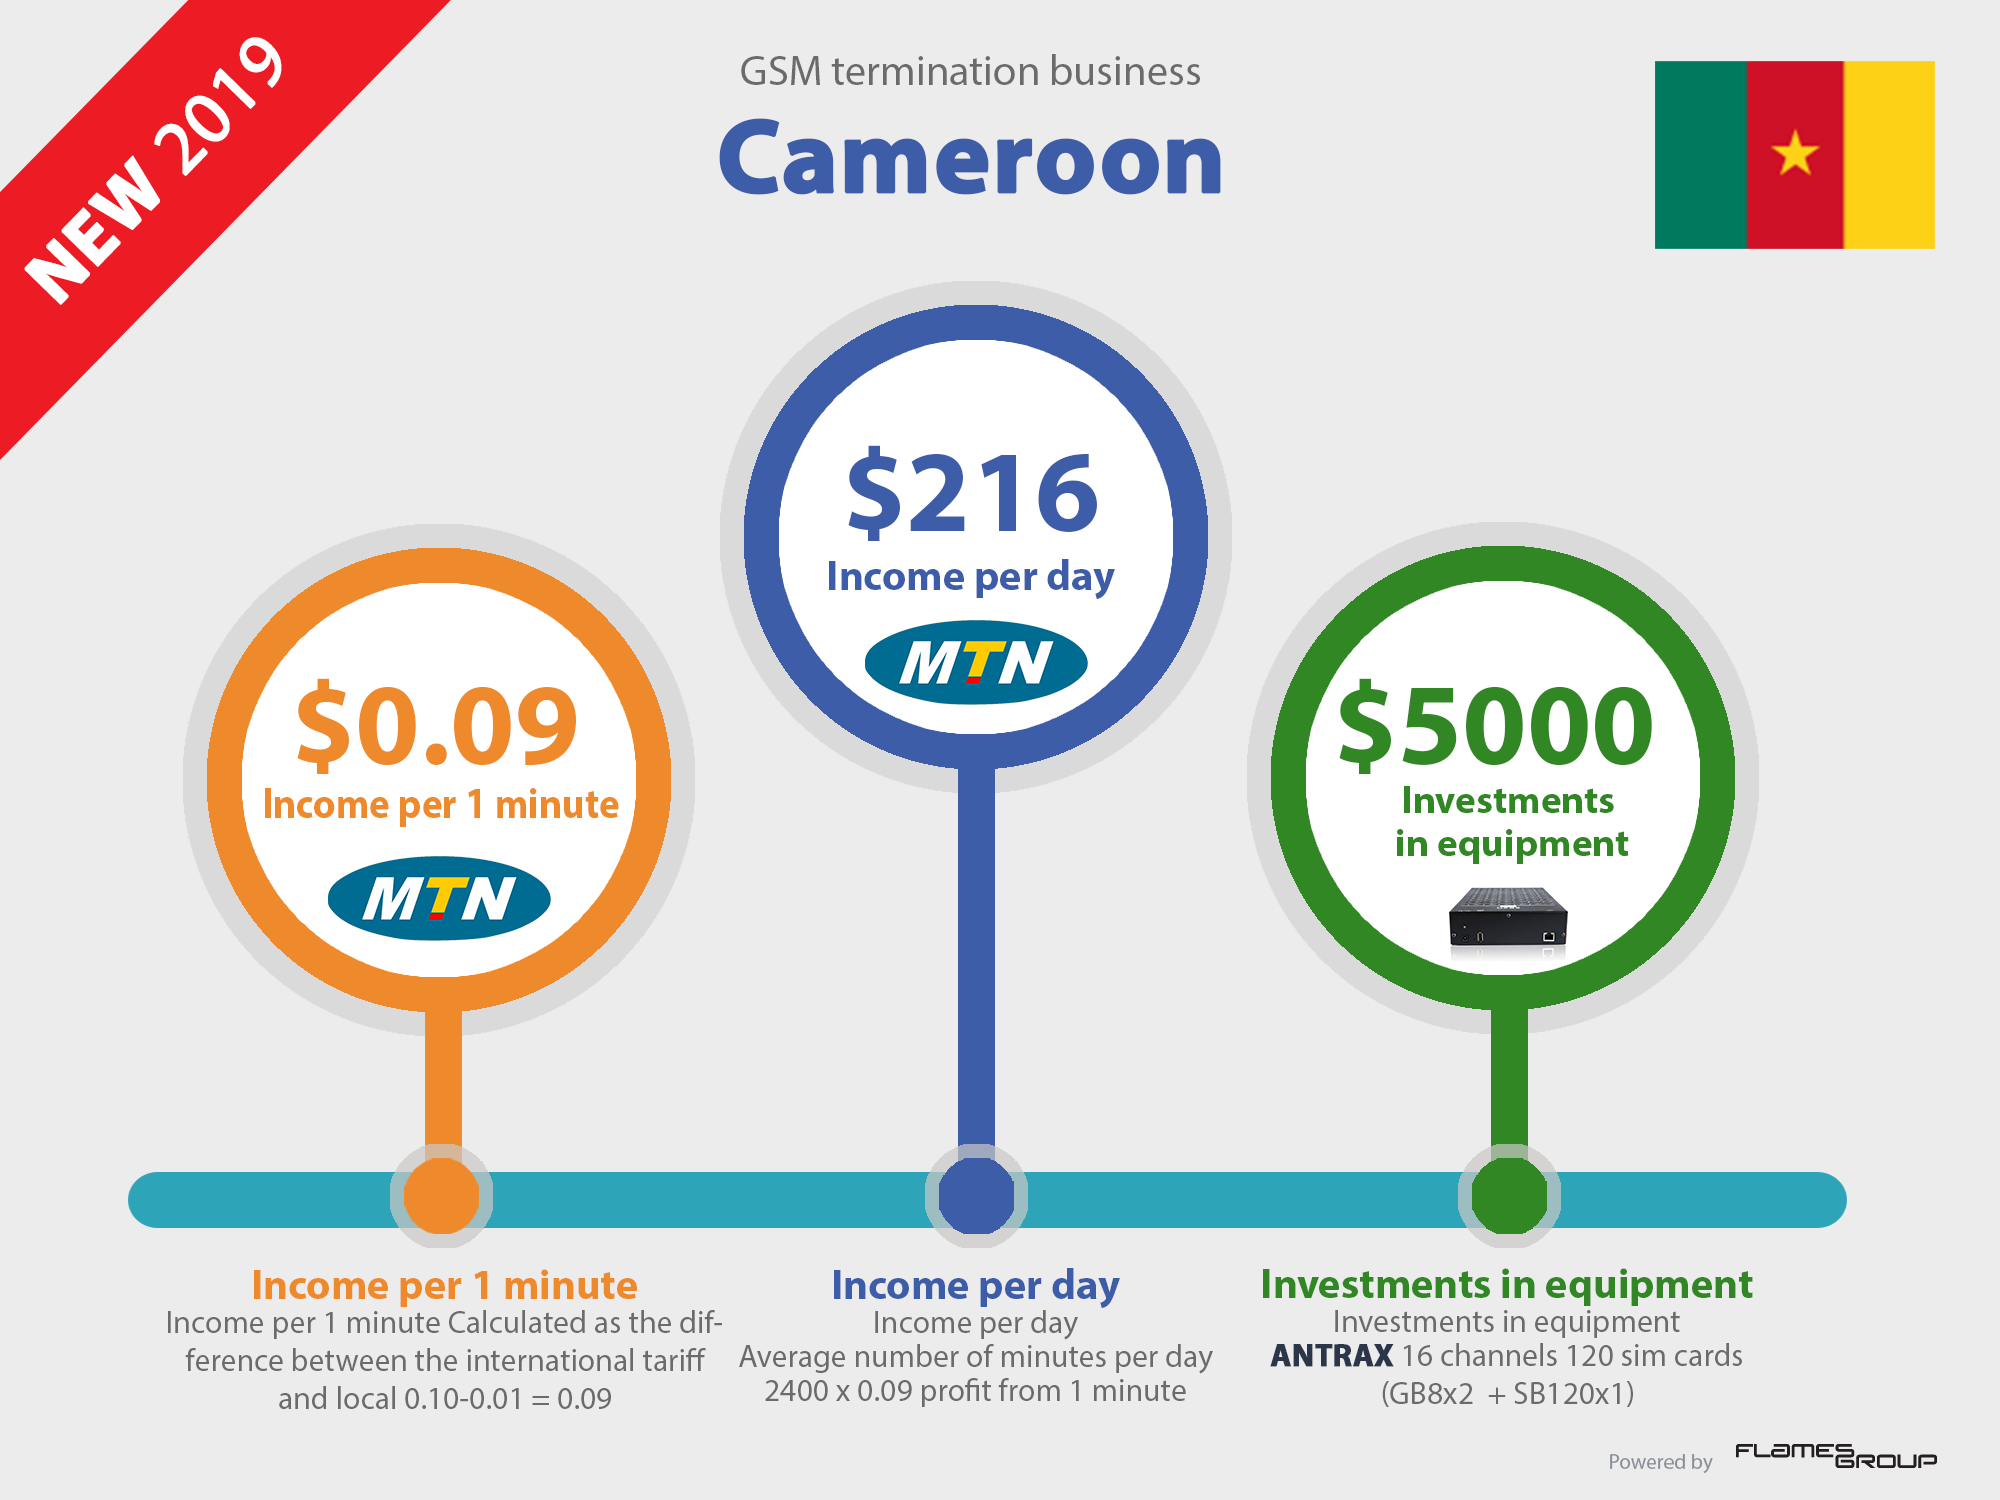 Call VoIP GSM termination business profit in Cameroon Infographic ANTRAX 2019